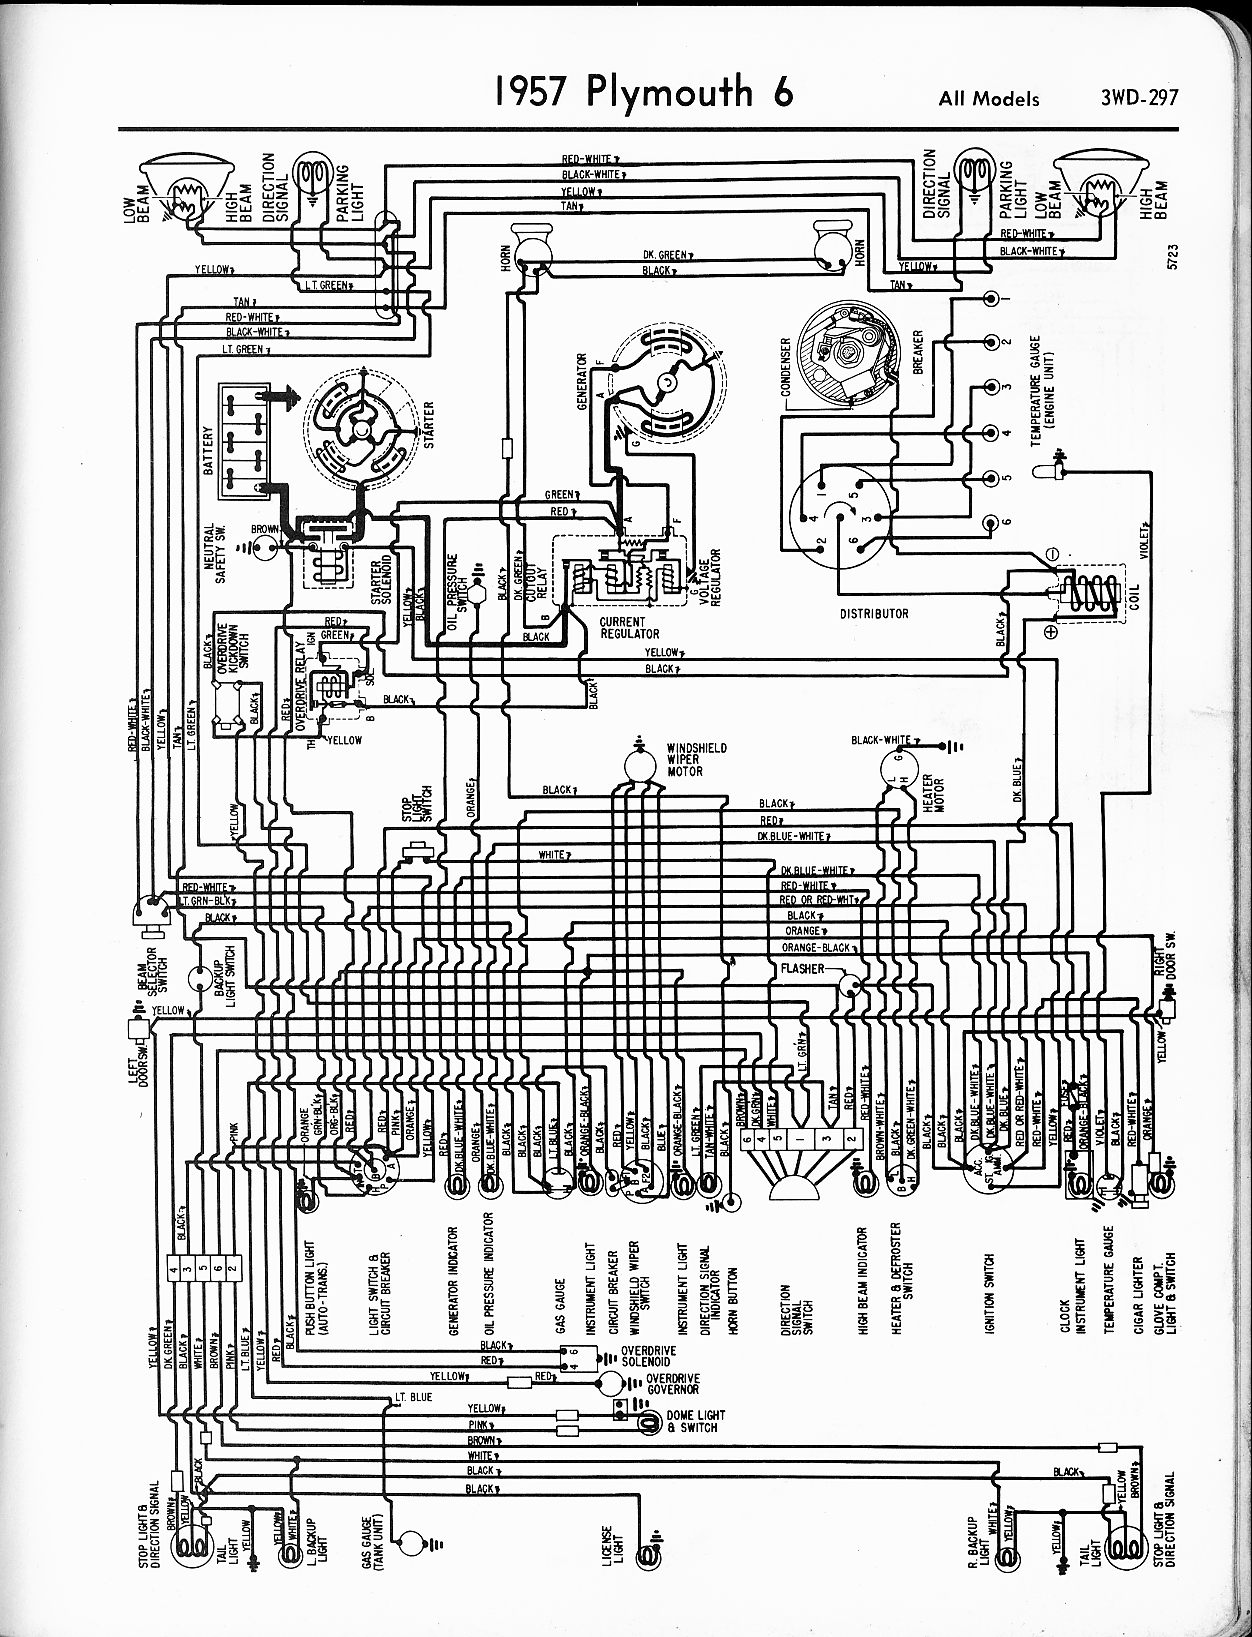 1965 plymouth valiant wiring diagram 1965 wiring diagrams 1957 plymouth 6 plymouth valiant wiring diagram